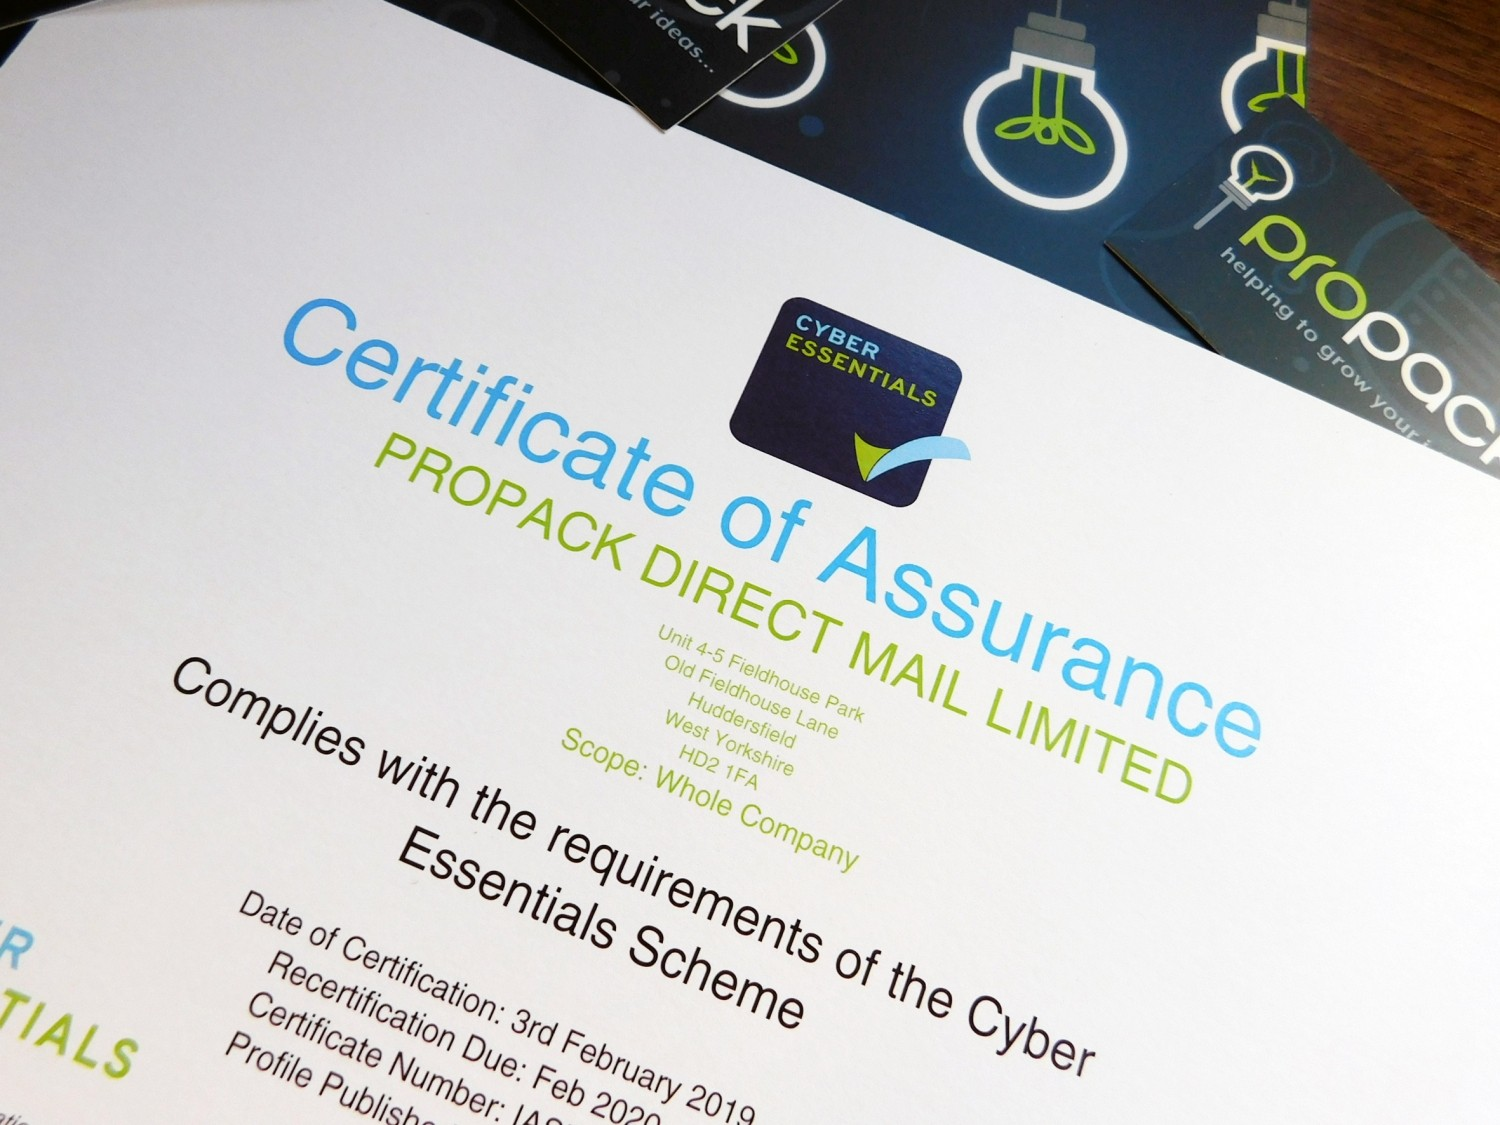 Success in 'Cyber Essentials' Award for Propack!